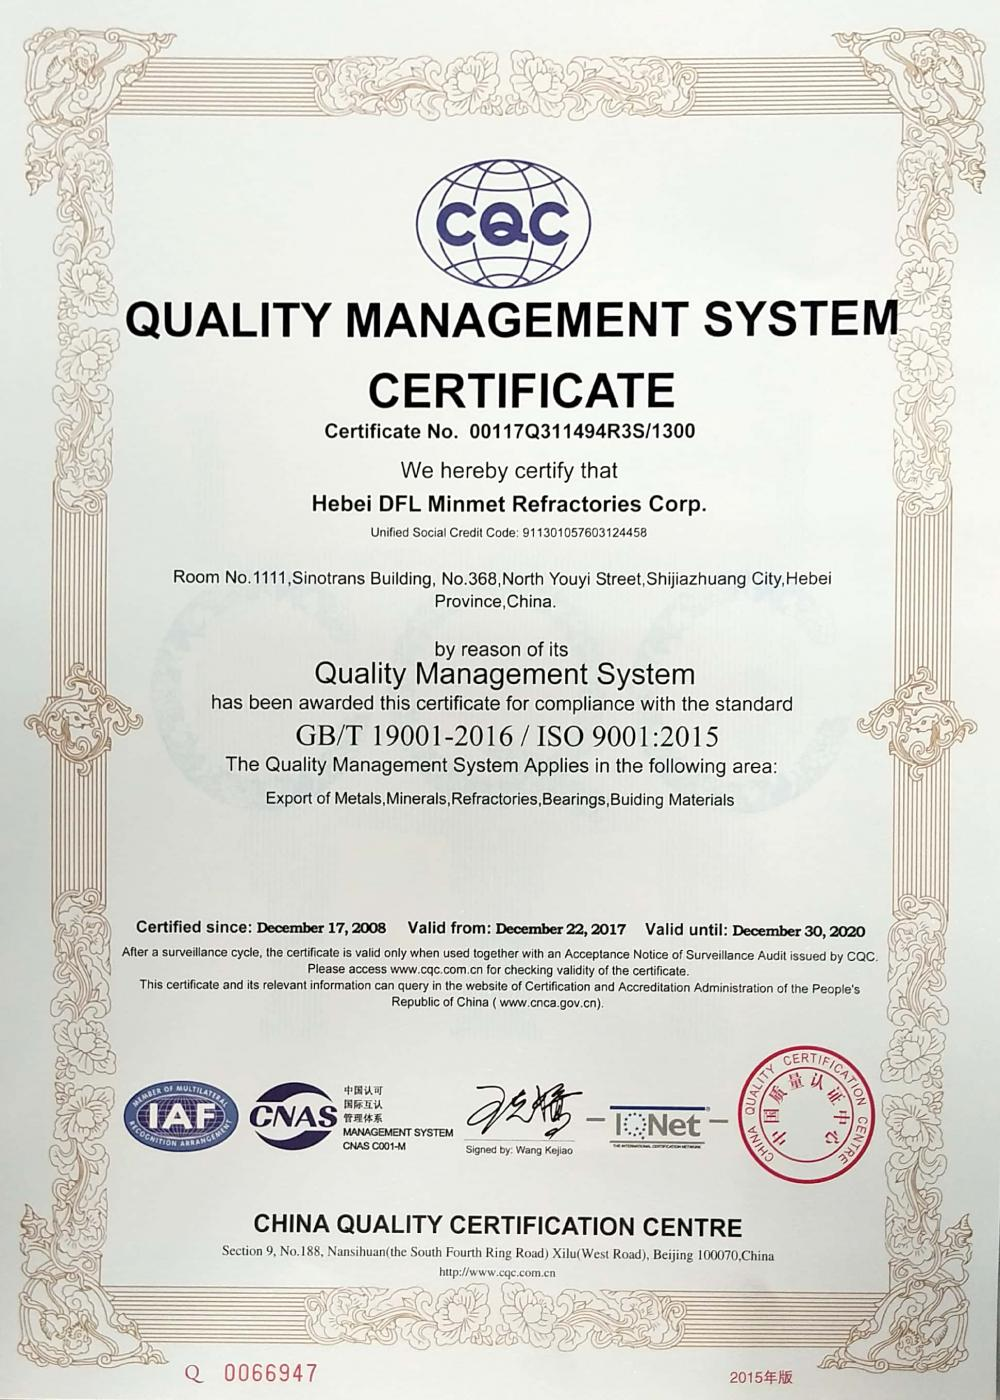 QUALITY MANAGEMENT SYSTEM CERTIFICATE